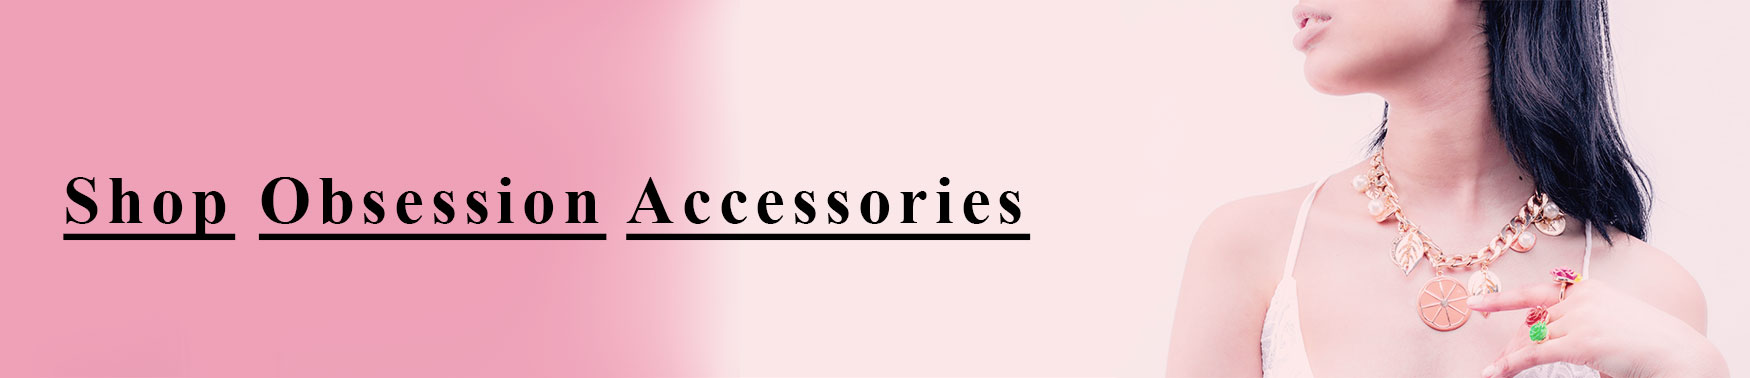 shop-obsession-accessories.jpg